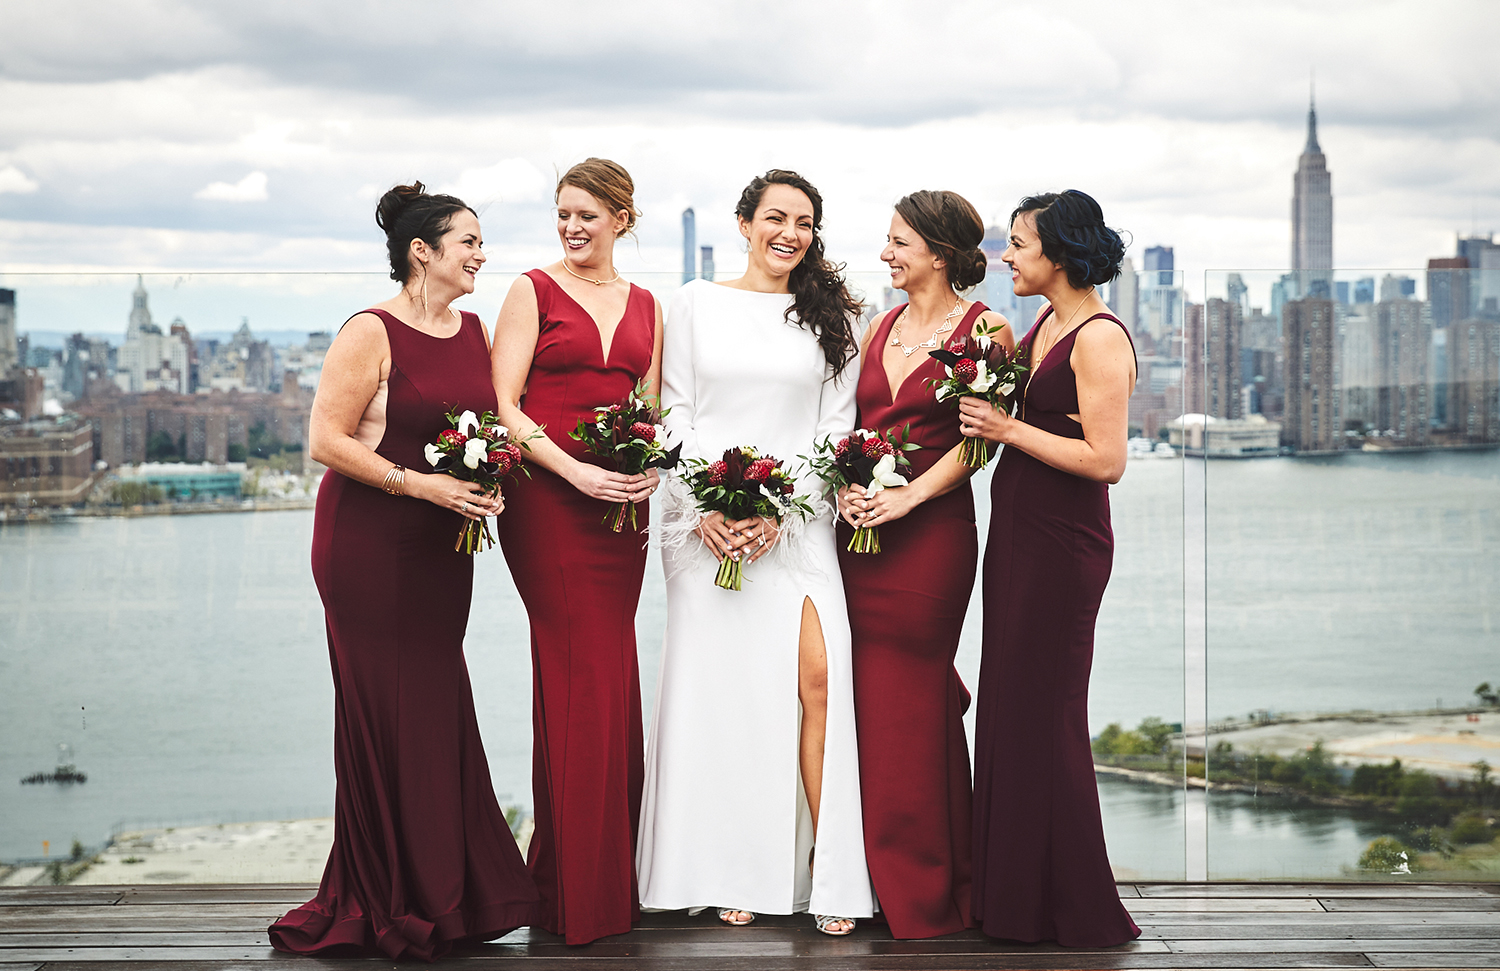 170930_WilliamValeWeddingPhotography_BrooklynWeddingPhotographer_By_BriJohnsonWeddings_0049.jpg